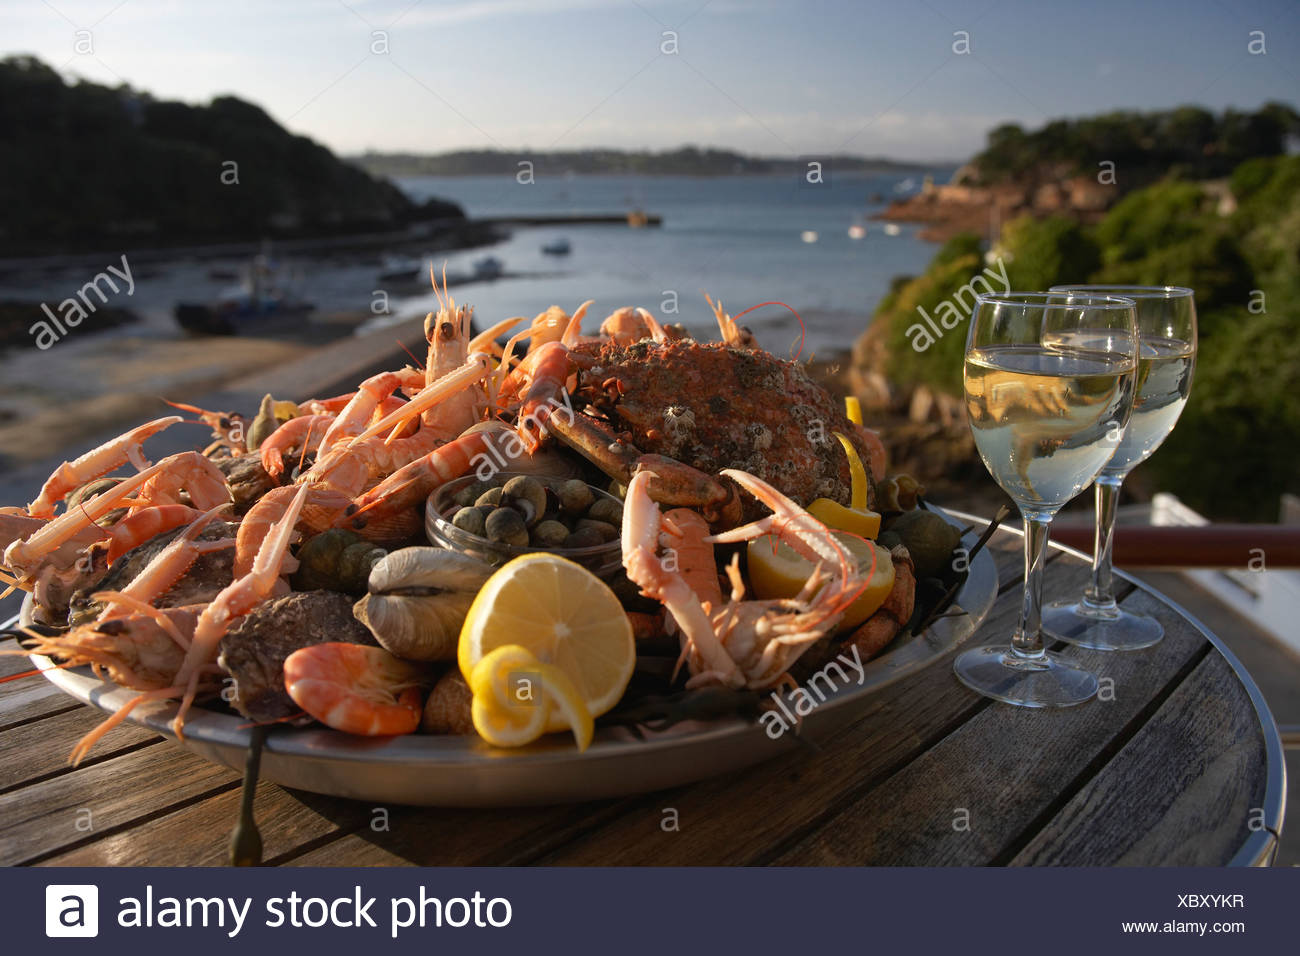 Seafood platter in Brittany - Stock Image